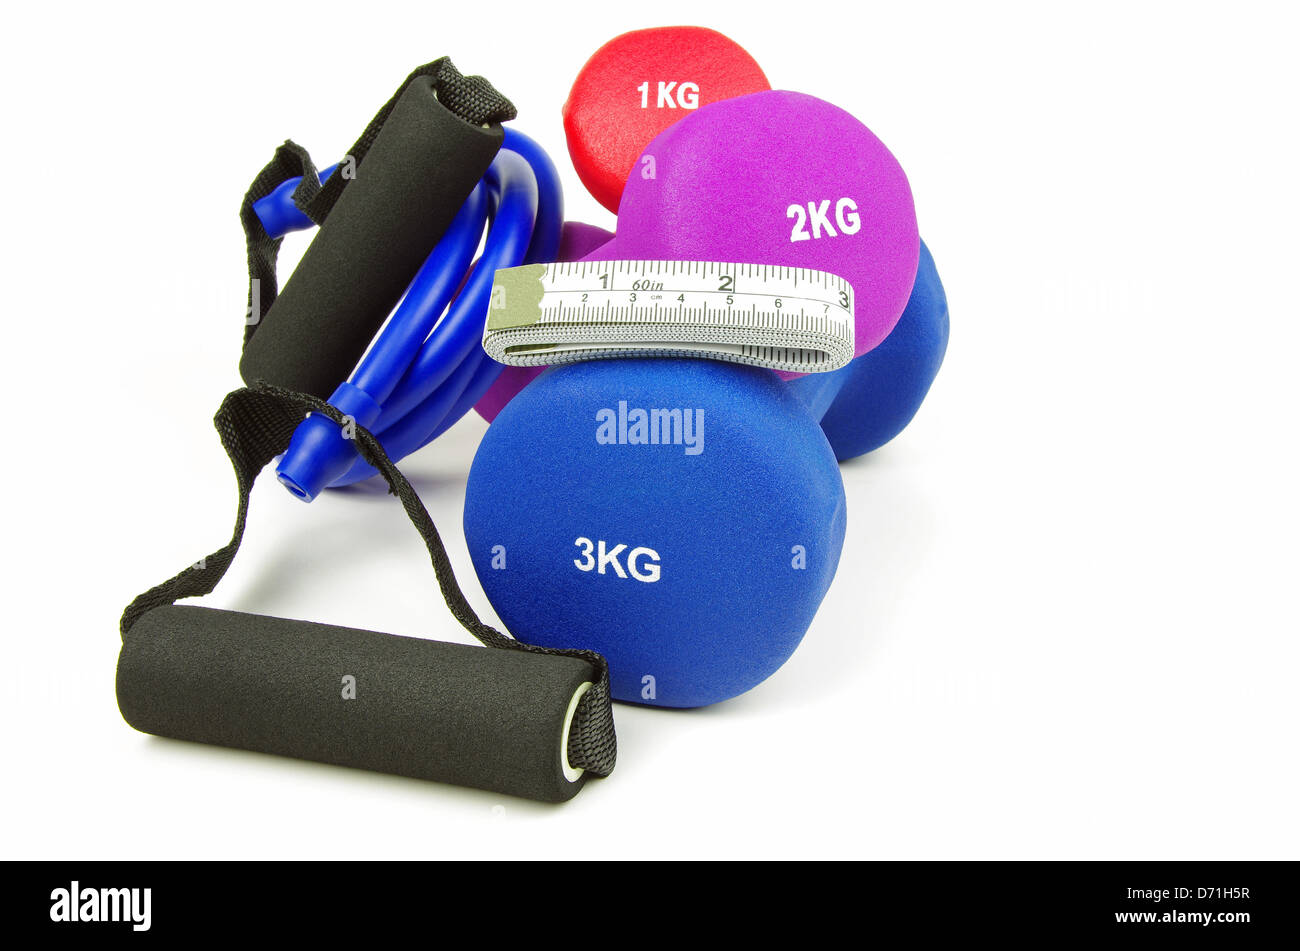 keep fit training equipment with a folded measuring tape on a white background - Stock Image